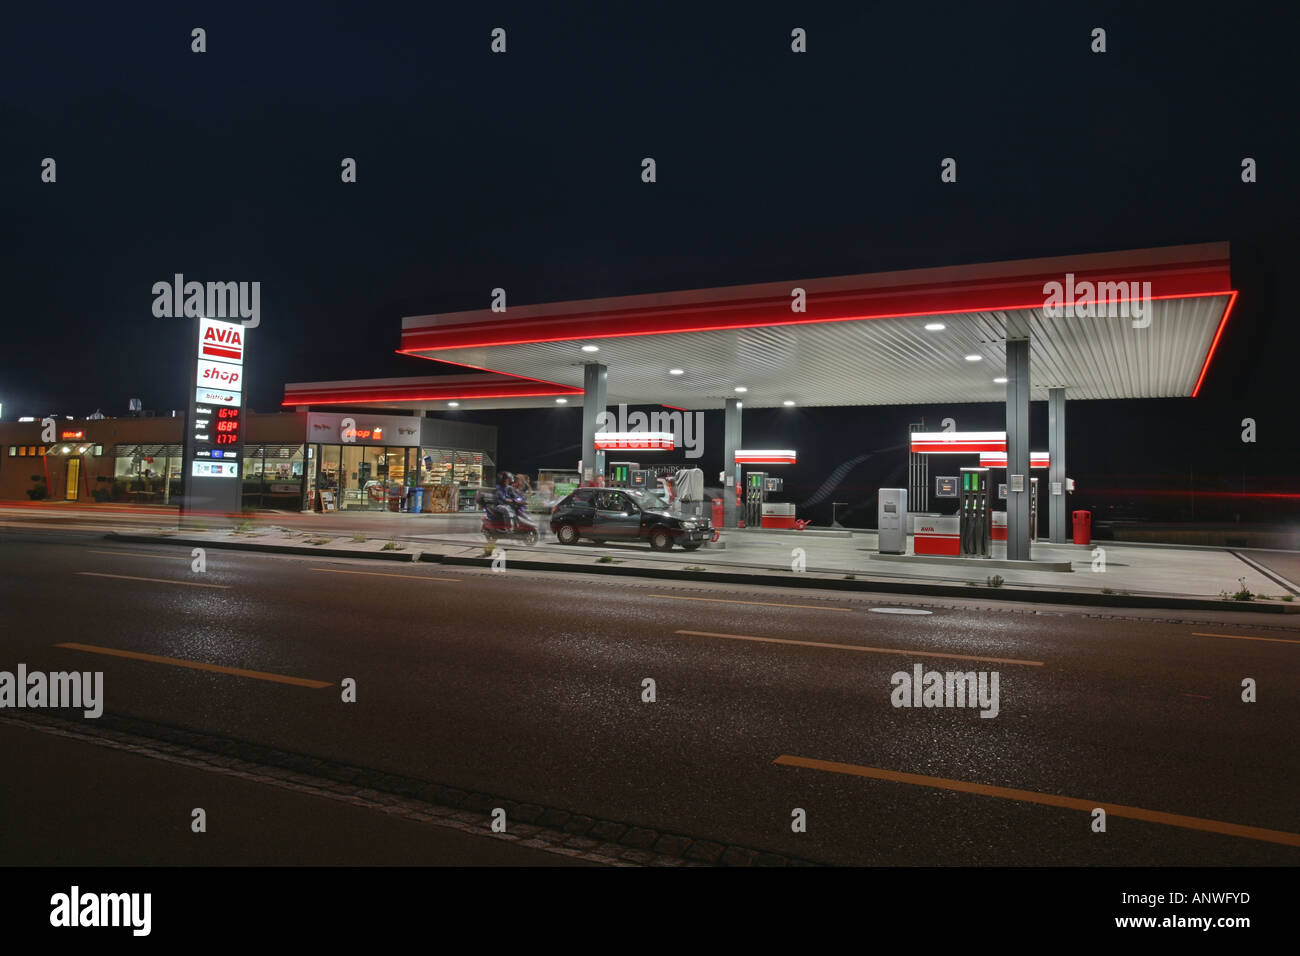 DRI of an Avia gas station illuminating a wide road at dusk - Stock Image